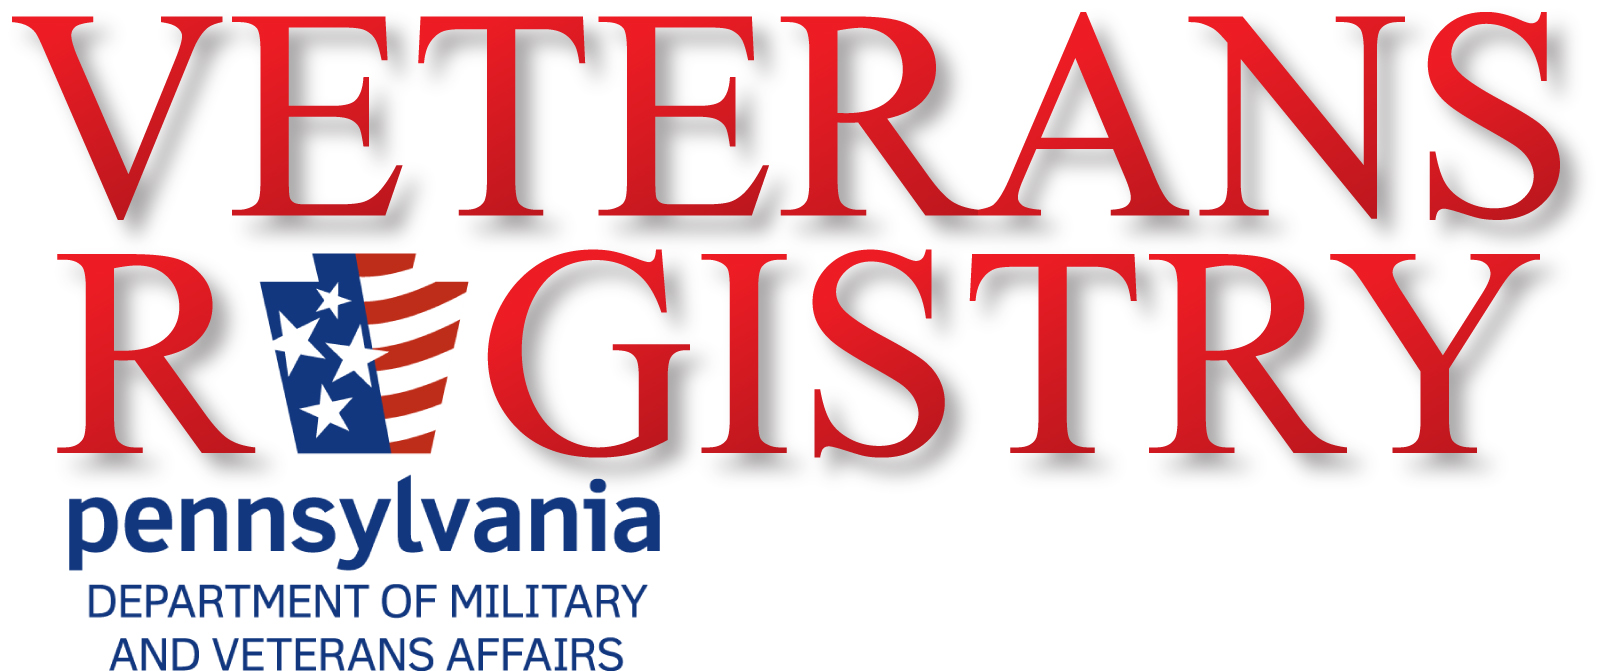 Veterans Registry